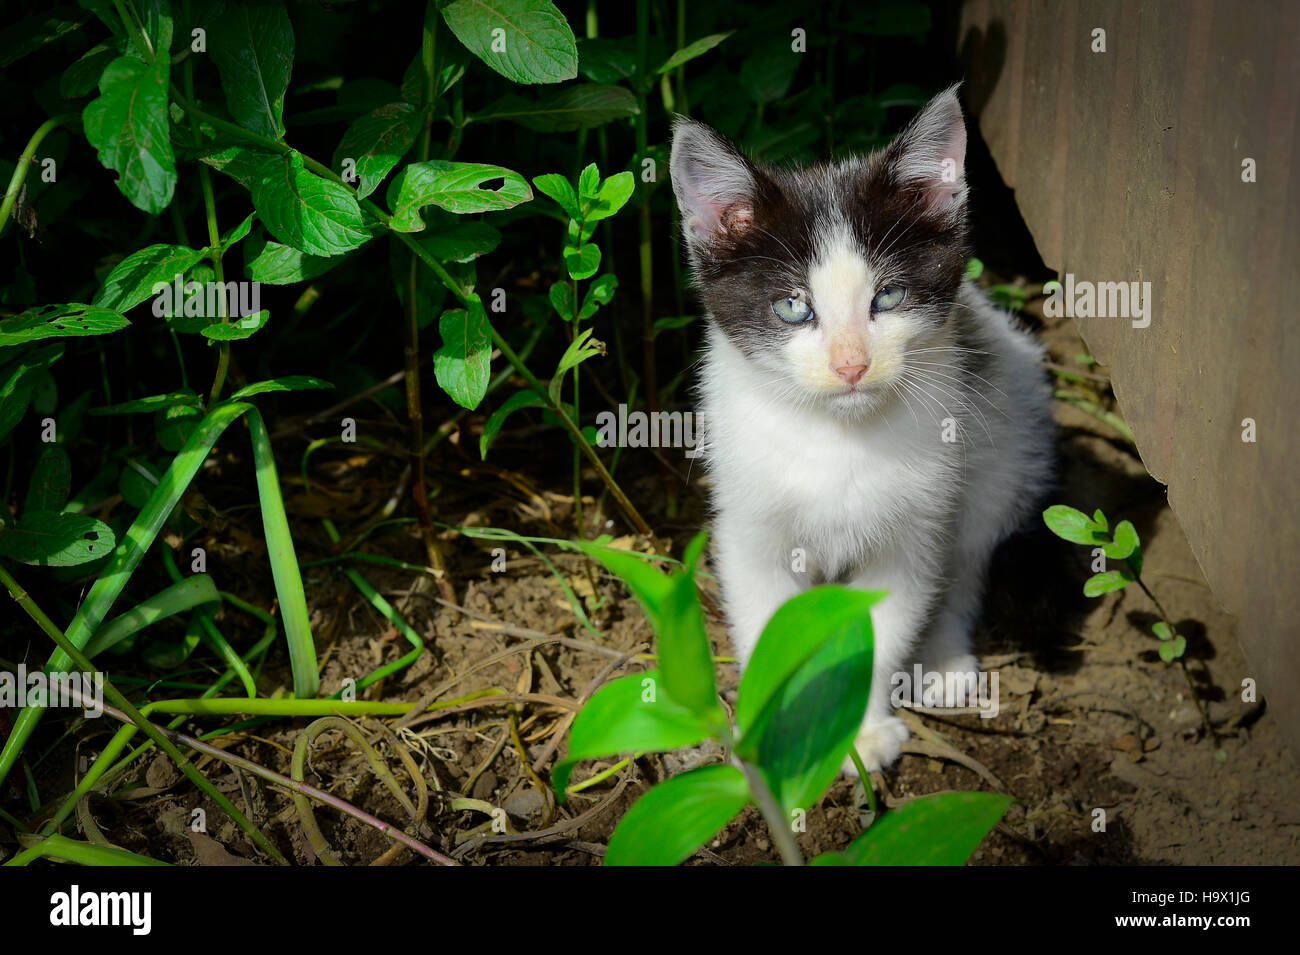 Small cats - Stock Image